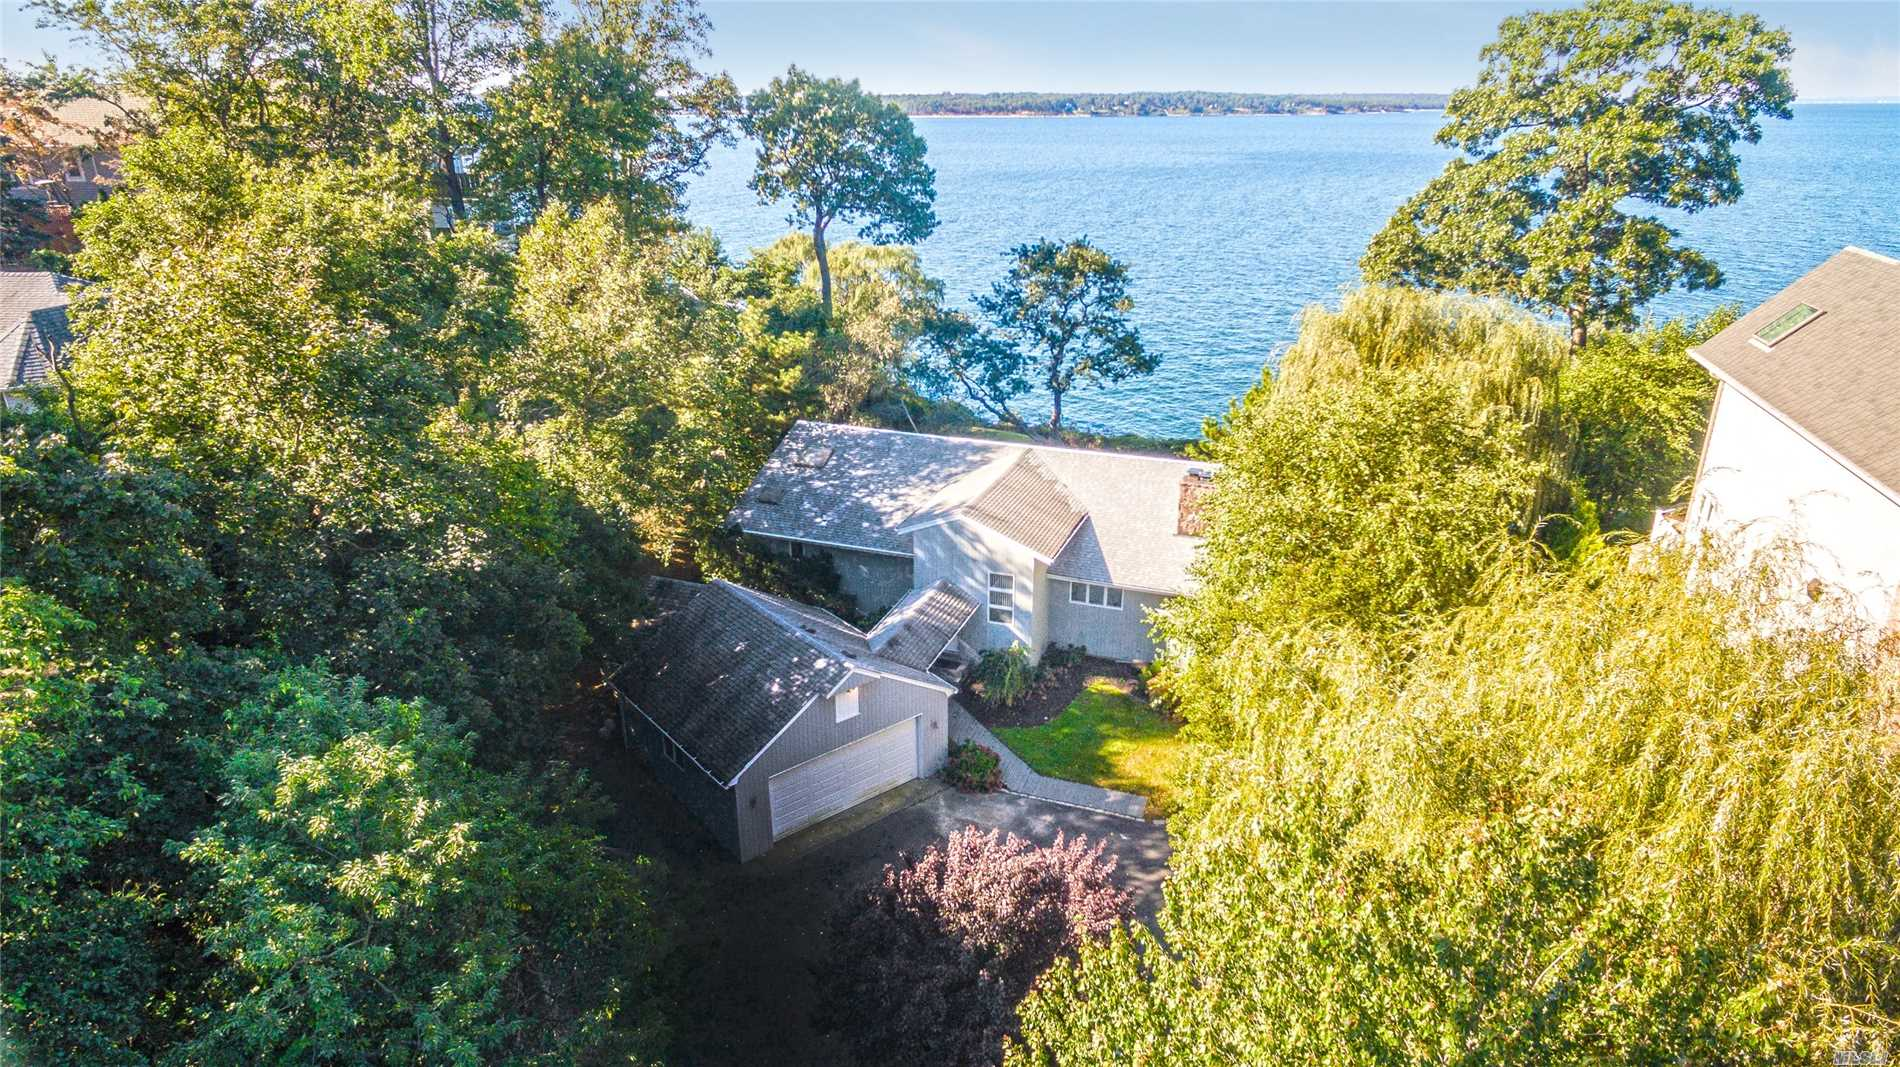 27 Essex Dr - Northport, New York